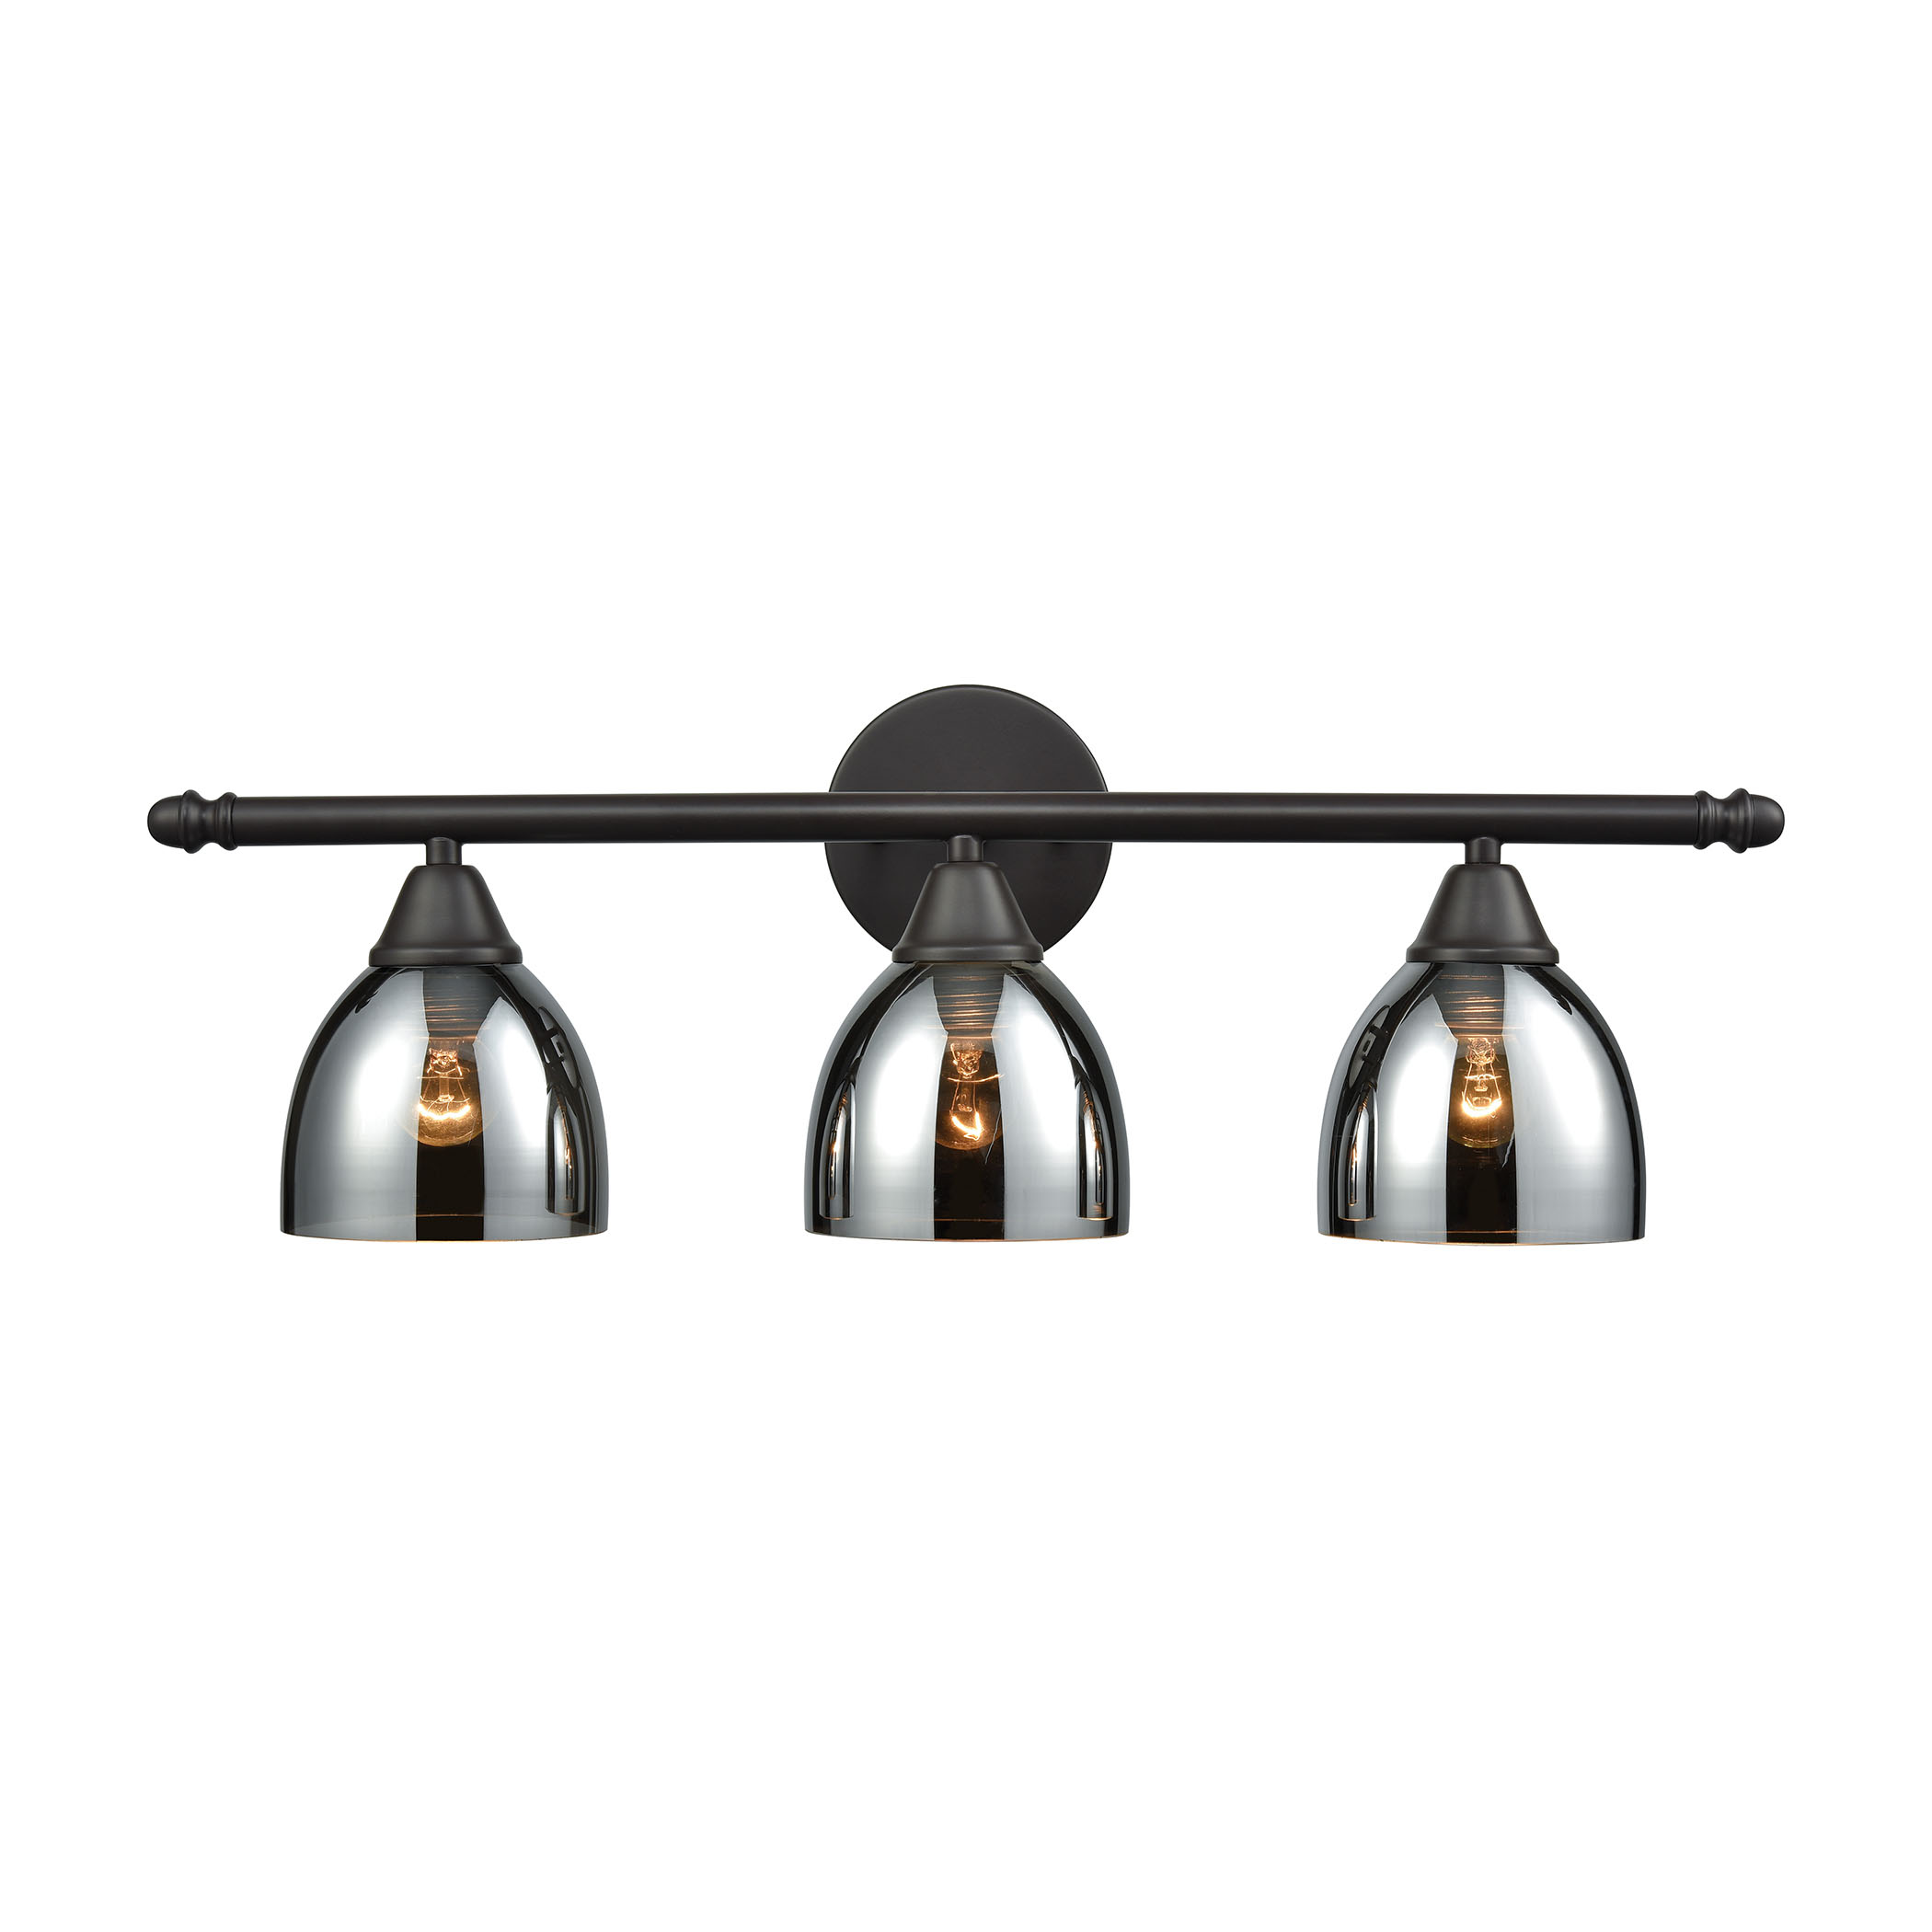 Reflections 3 Light Vanity in Oil Rubbed Bronze with Chrome Plated Glass